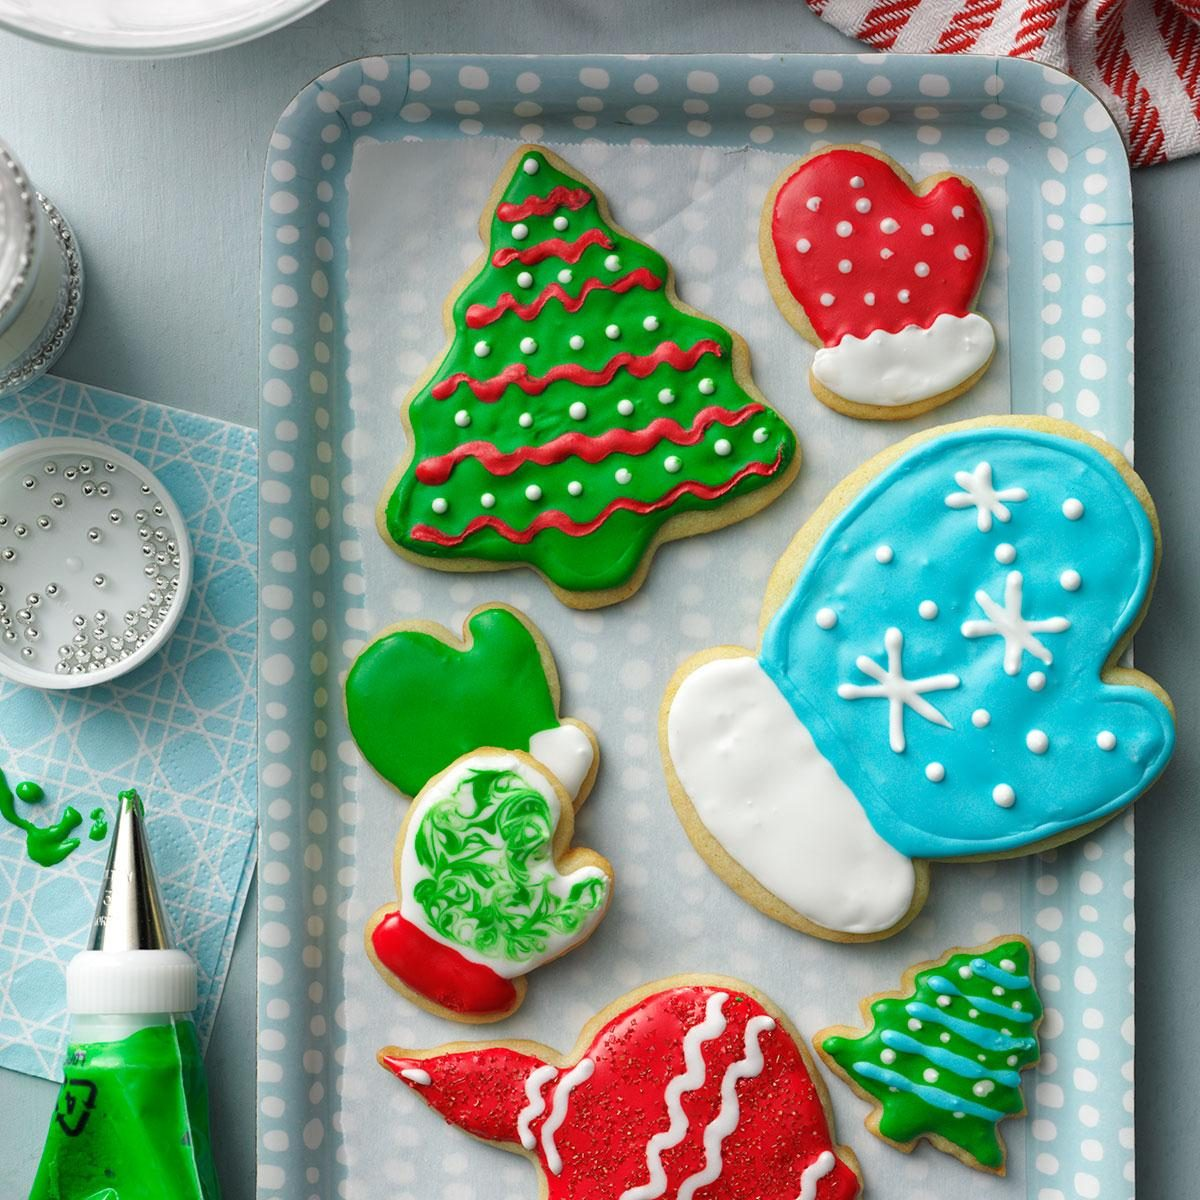 26 Best The Sounds Of Chrismas Images On Pinterest: Holiday Cutout Cookies Recipe